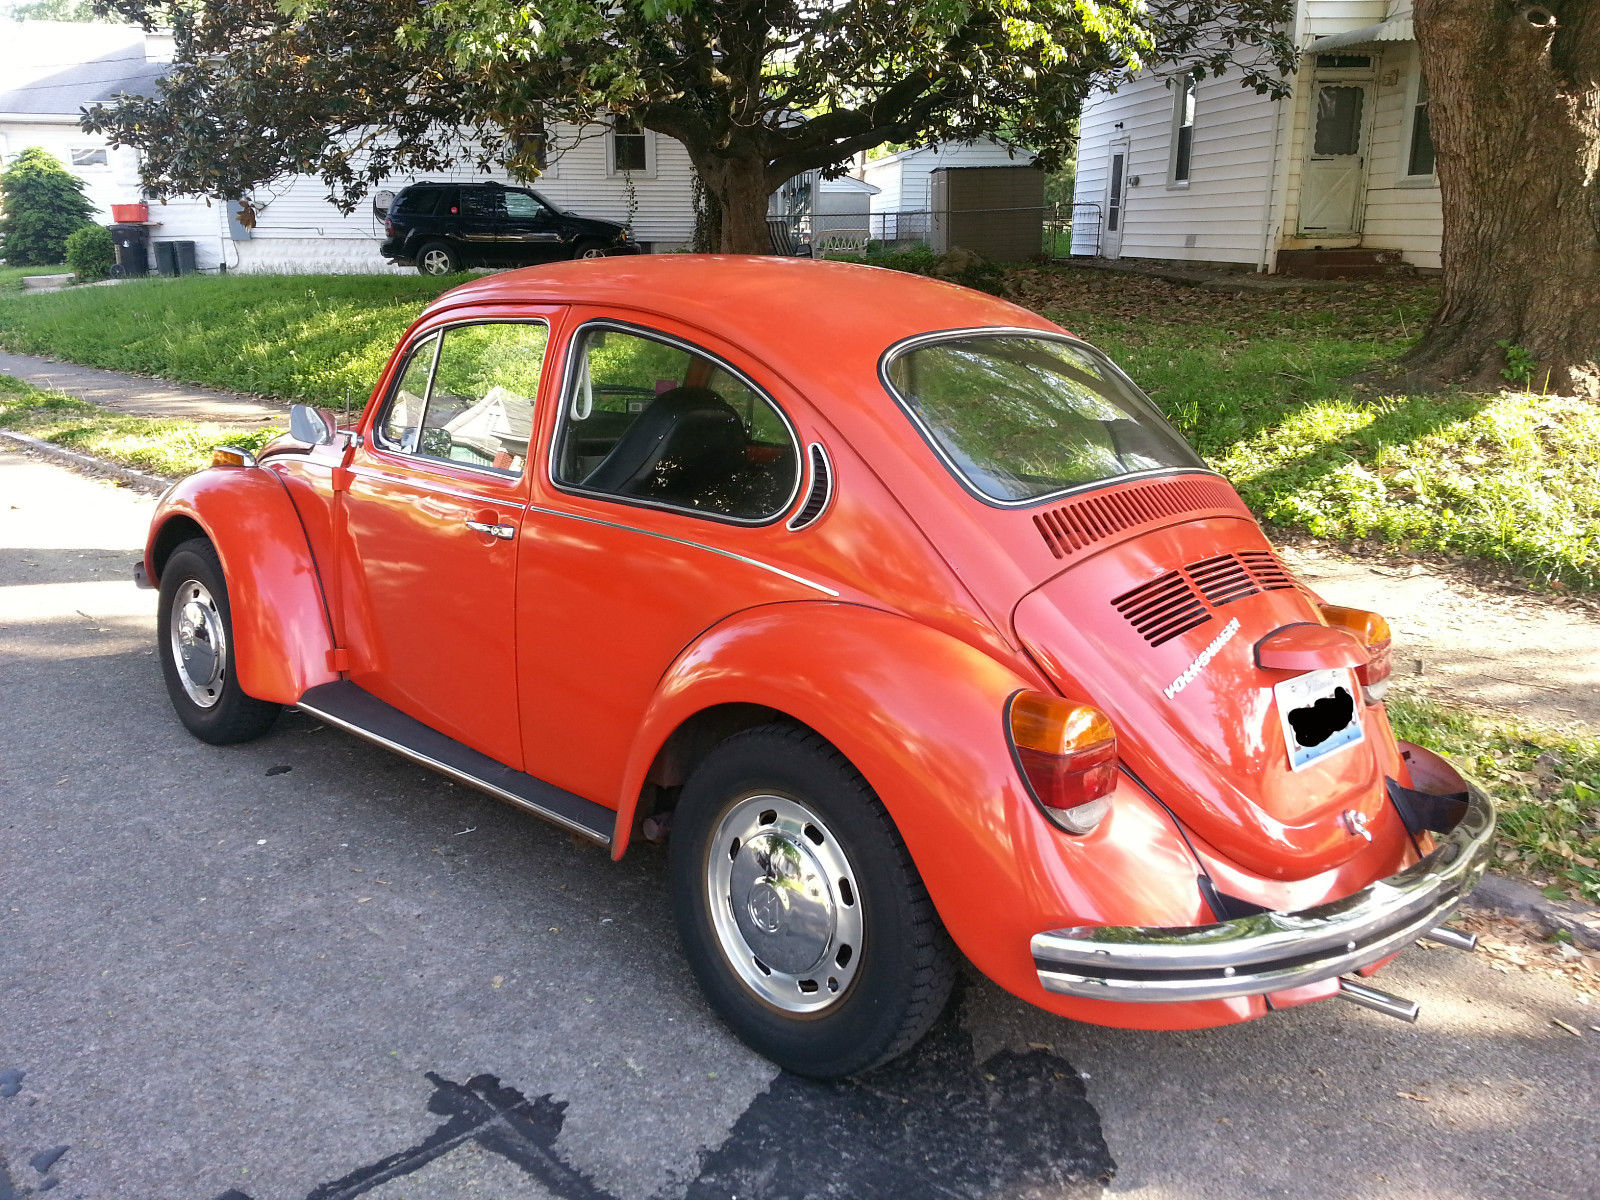 orange volkswagen vw super beetle vintage classic volkswagen beetle classic 1973 for sale. Black Bedroom Furniture Sets. Home Design Ideas